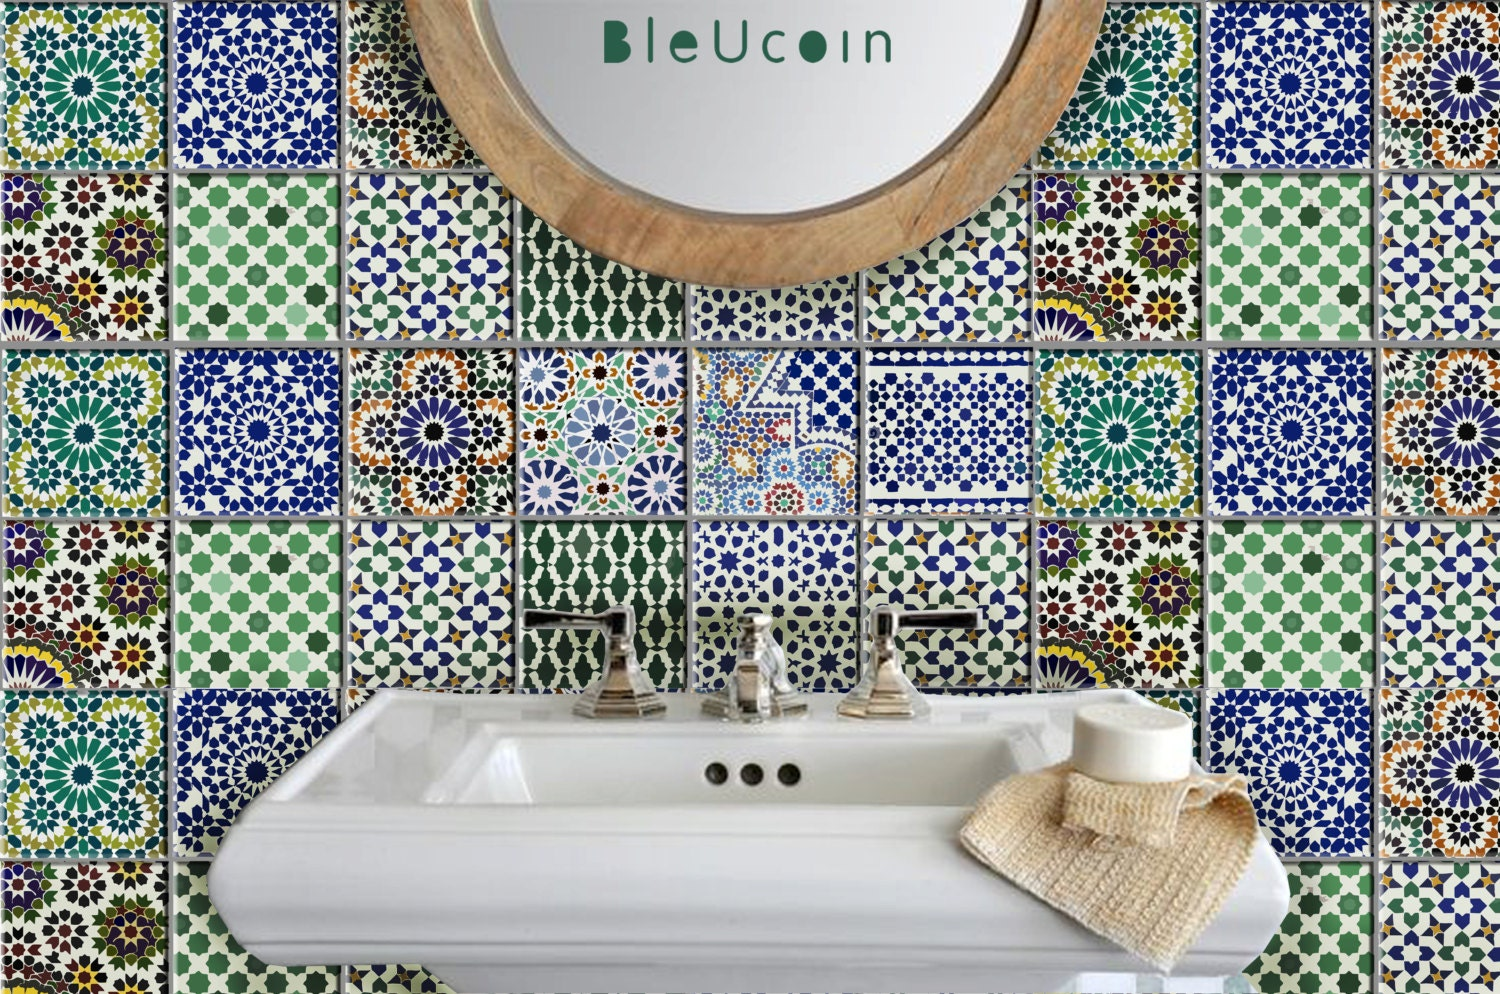 Moroccan Tile Wall Decal Kitchen Bathroom Stair Moroccan Tile Decal 11